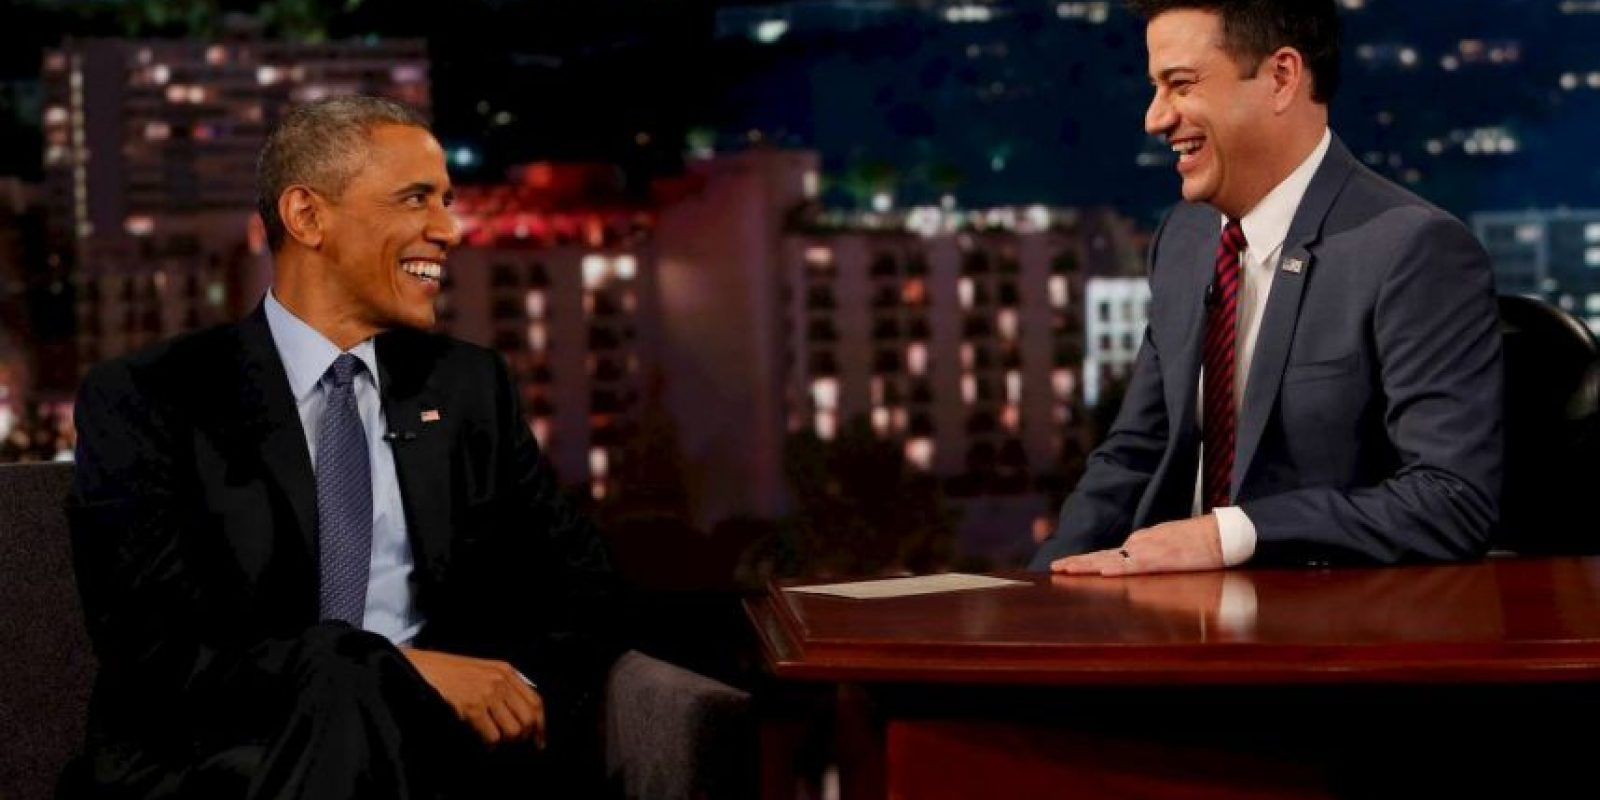 Foto: Facebook: Jimmy Kimmel